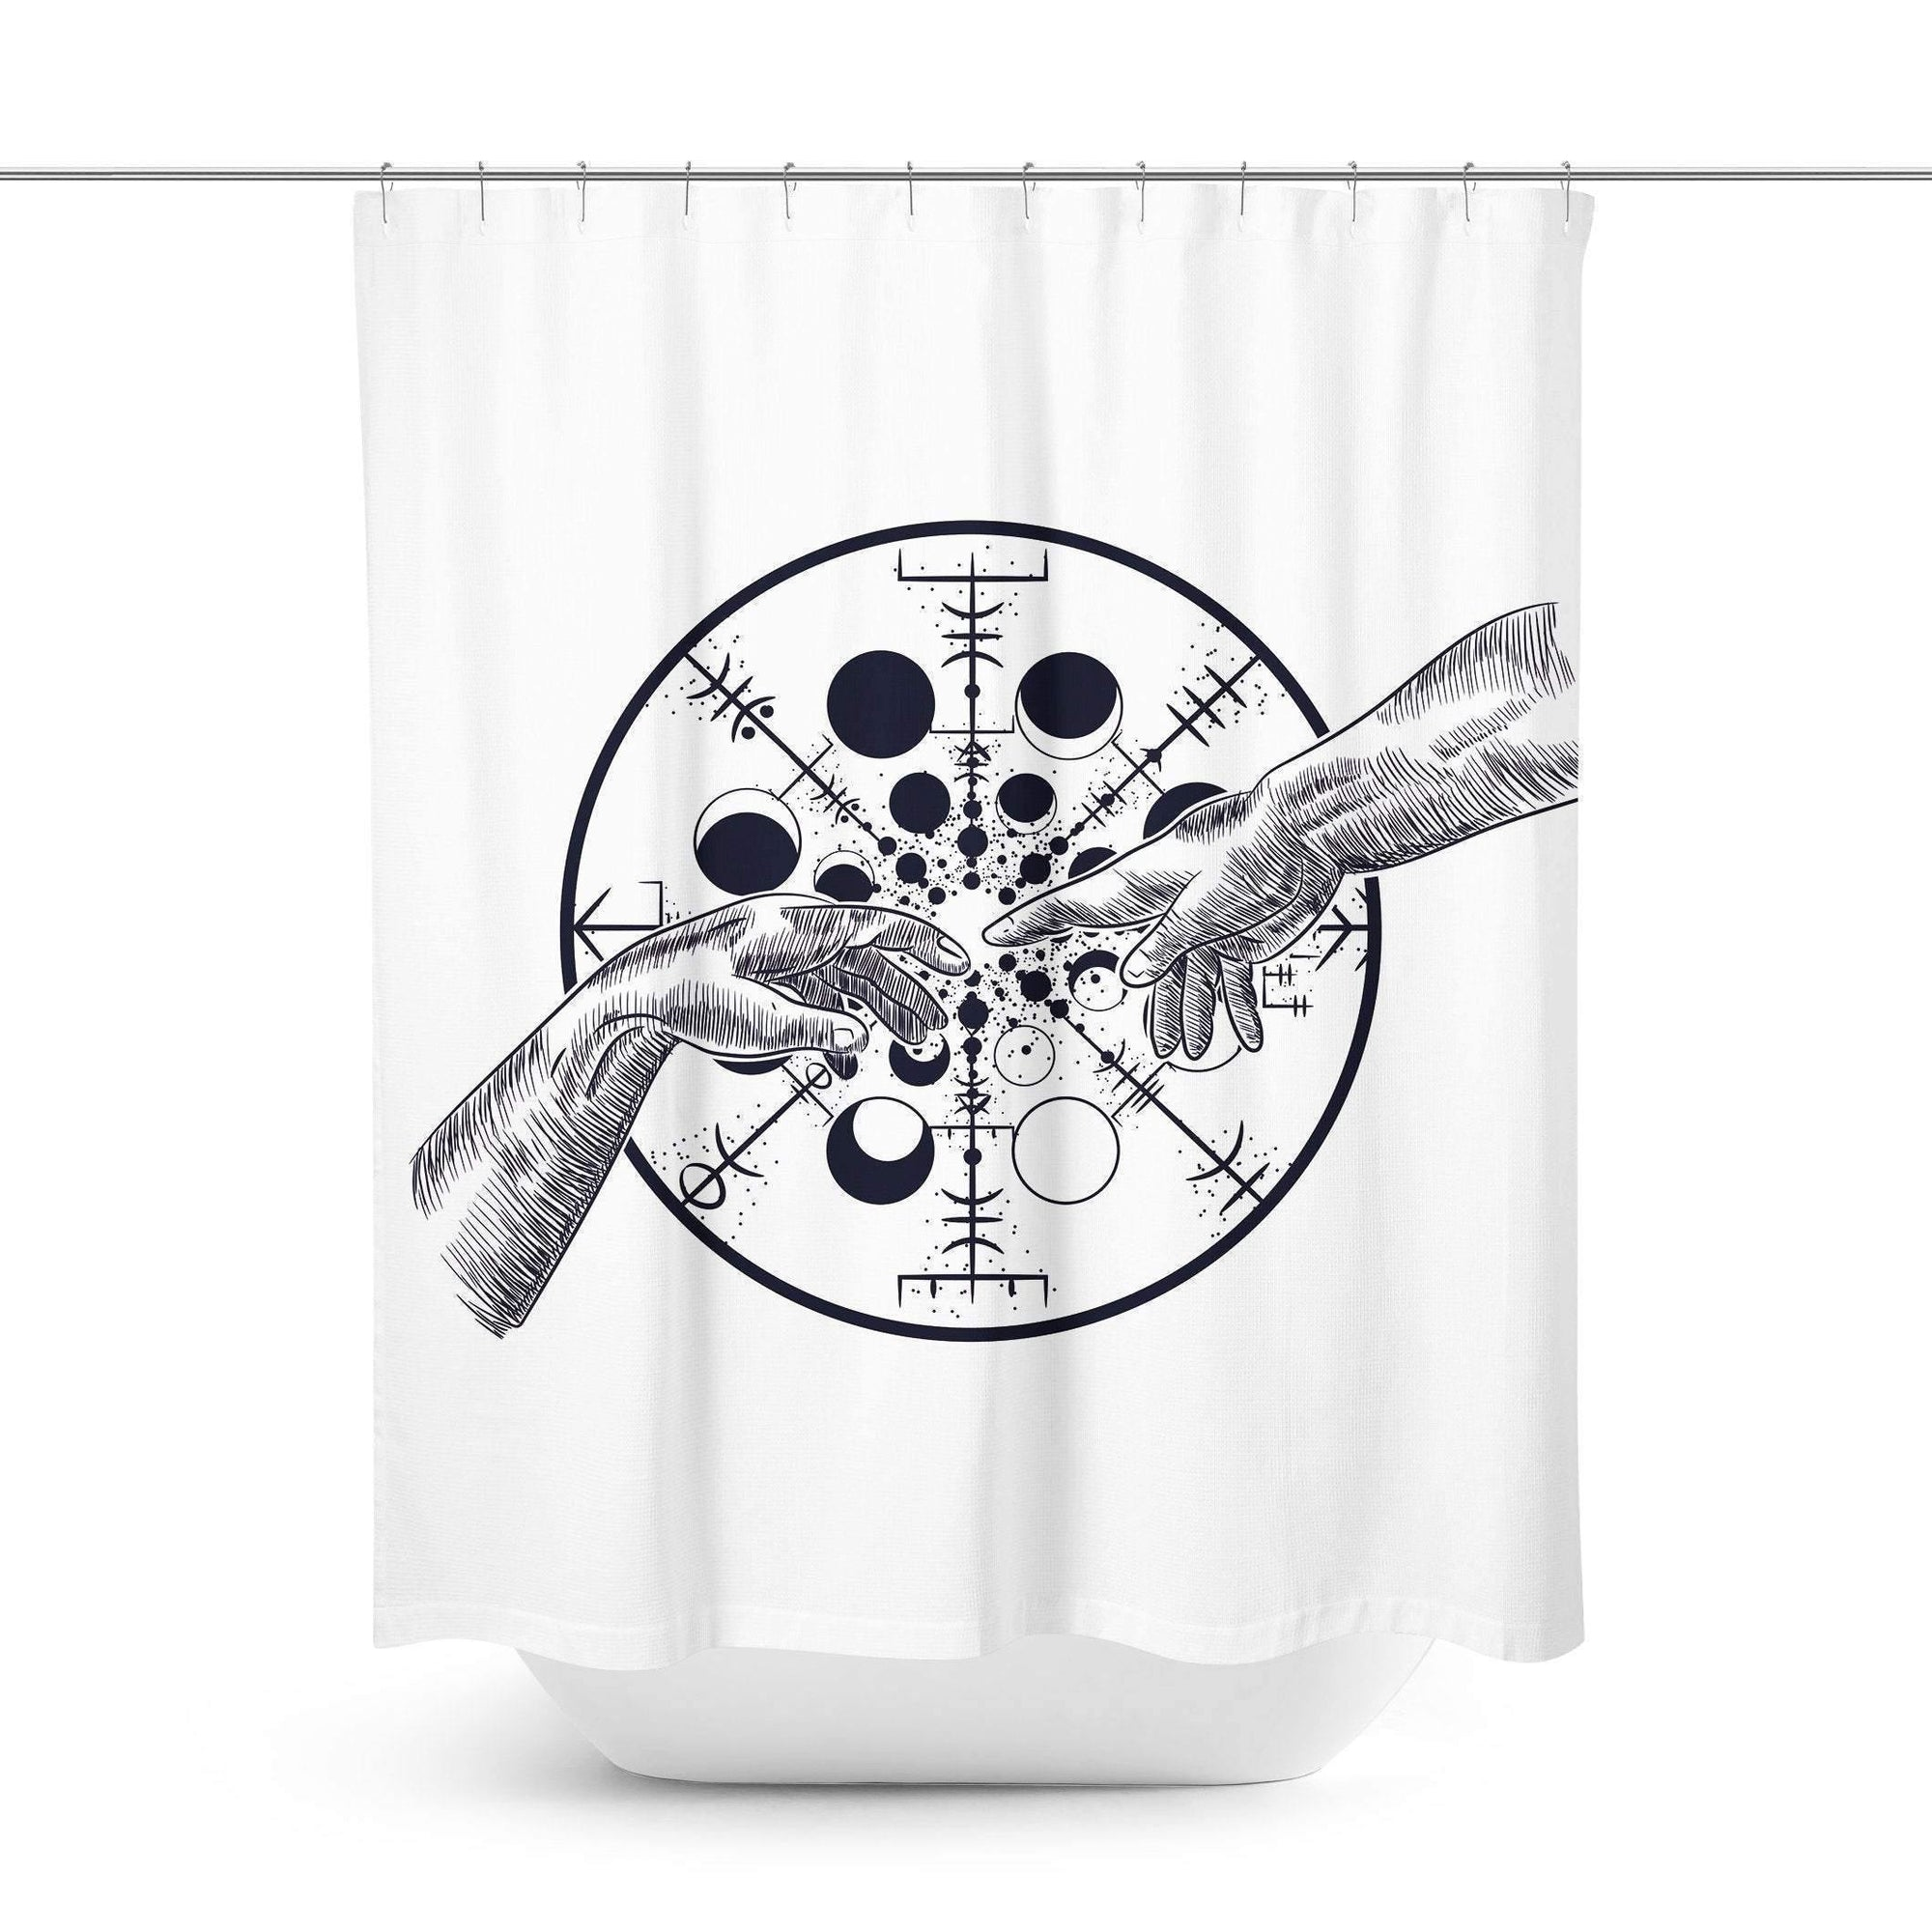 Celestial Space Shower Curtain - Shower Curtains - W.FRANCIS